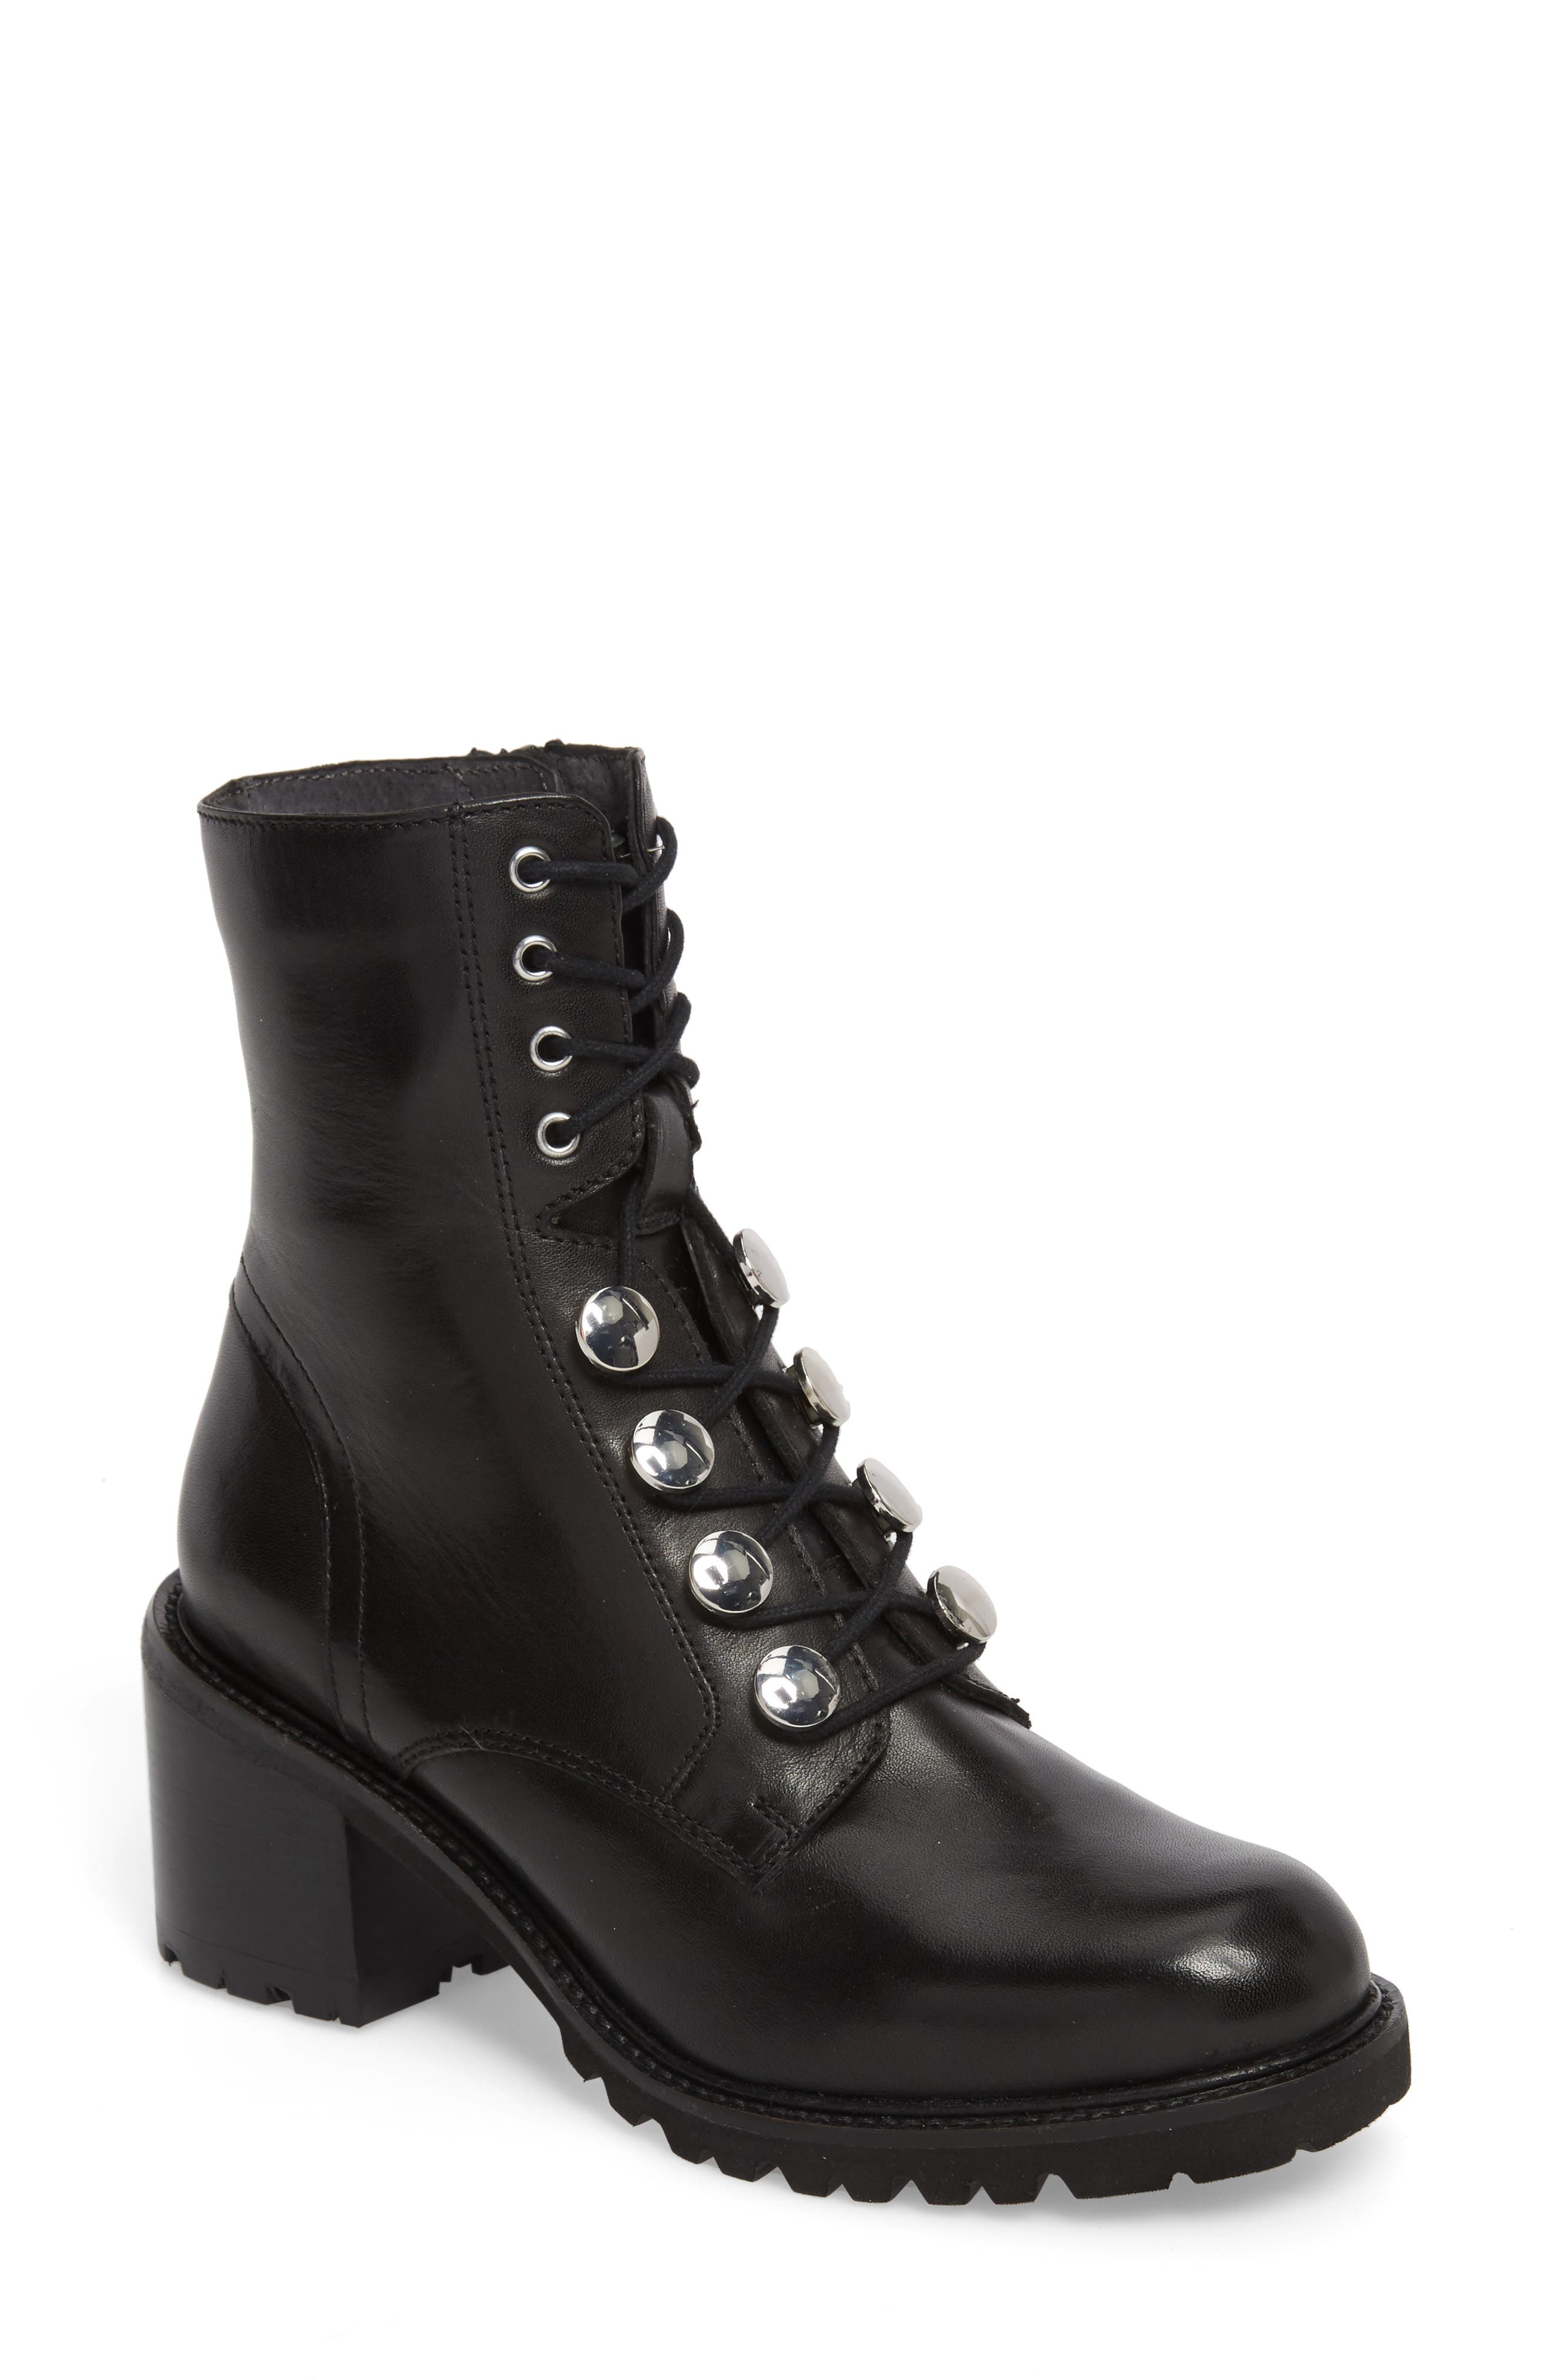 Make it Count Lace-Up Boot,                             Main thumbnail 1, color,                             Black Leather